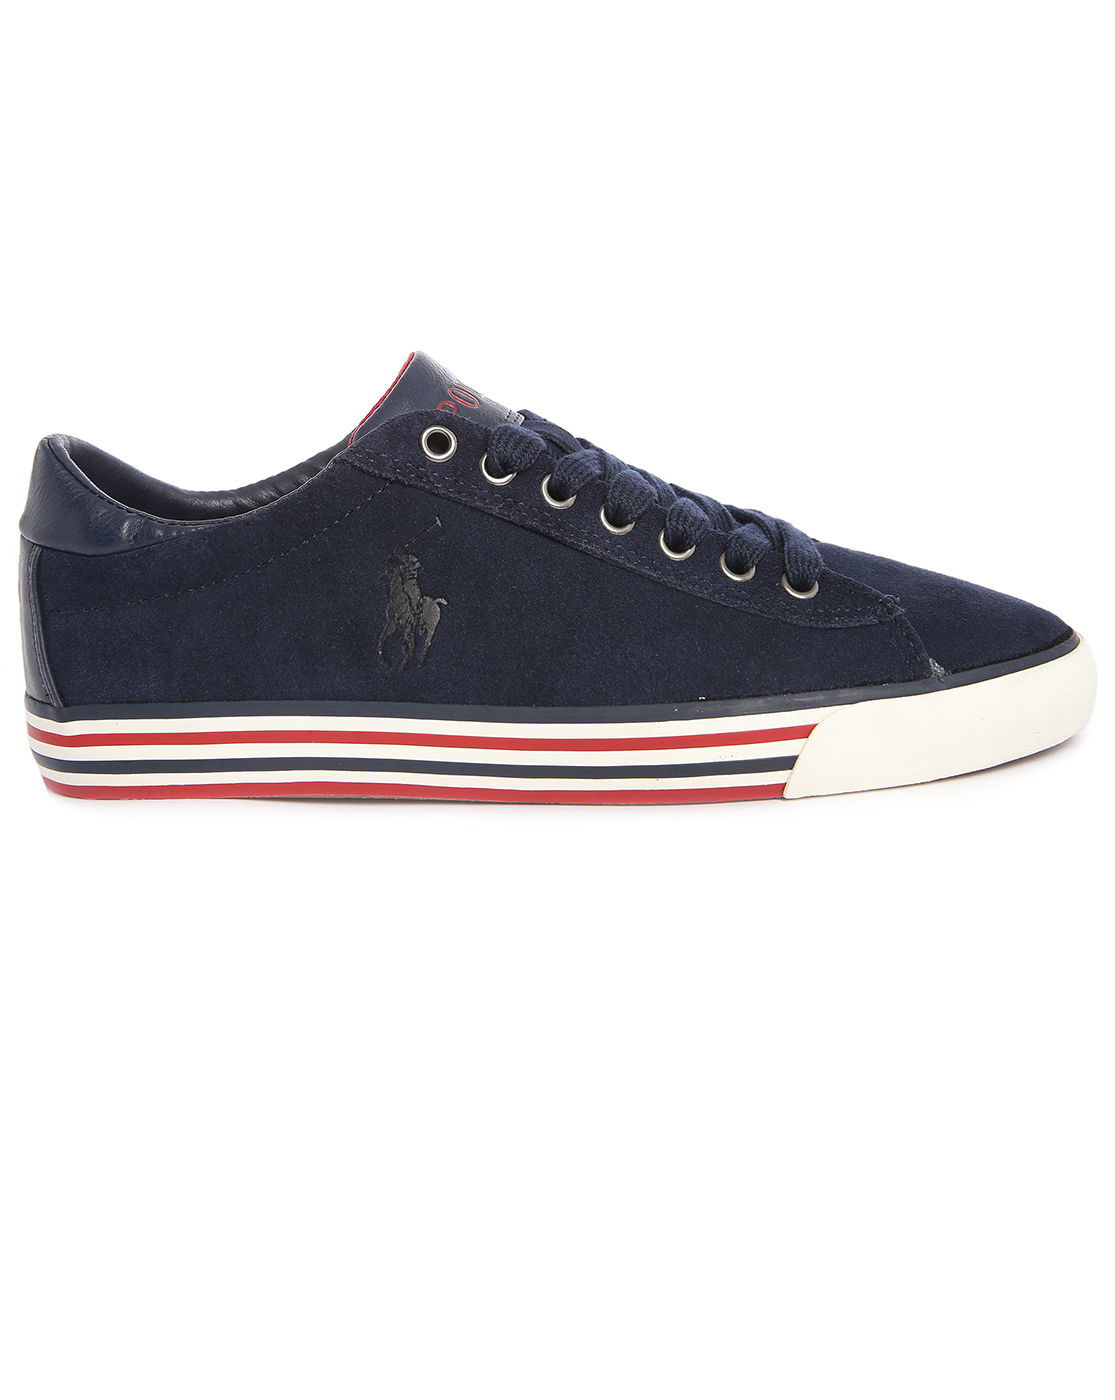 polo ralph lauren harvey navy suede striped sole sneakers in blue for. Black Bedroom Furniture Sets. Home Design Ideas